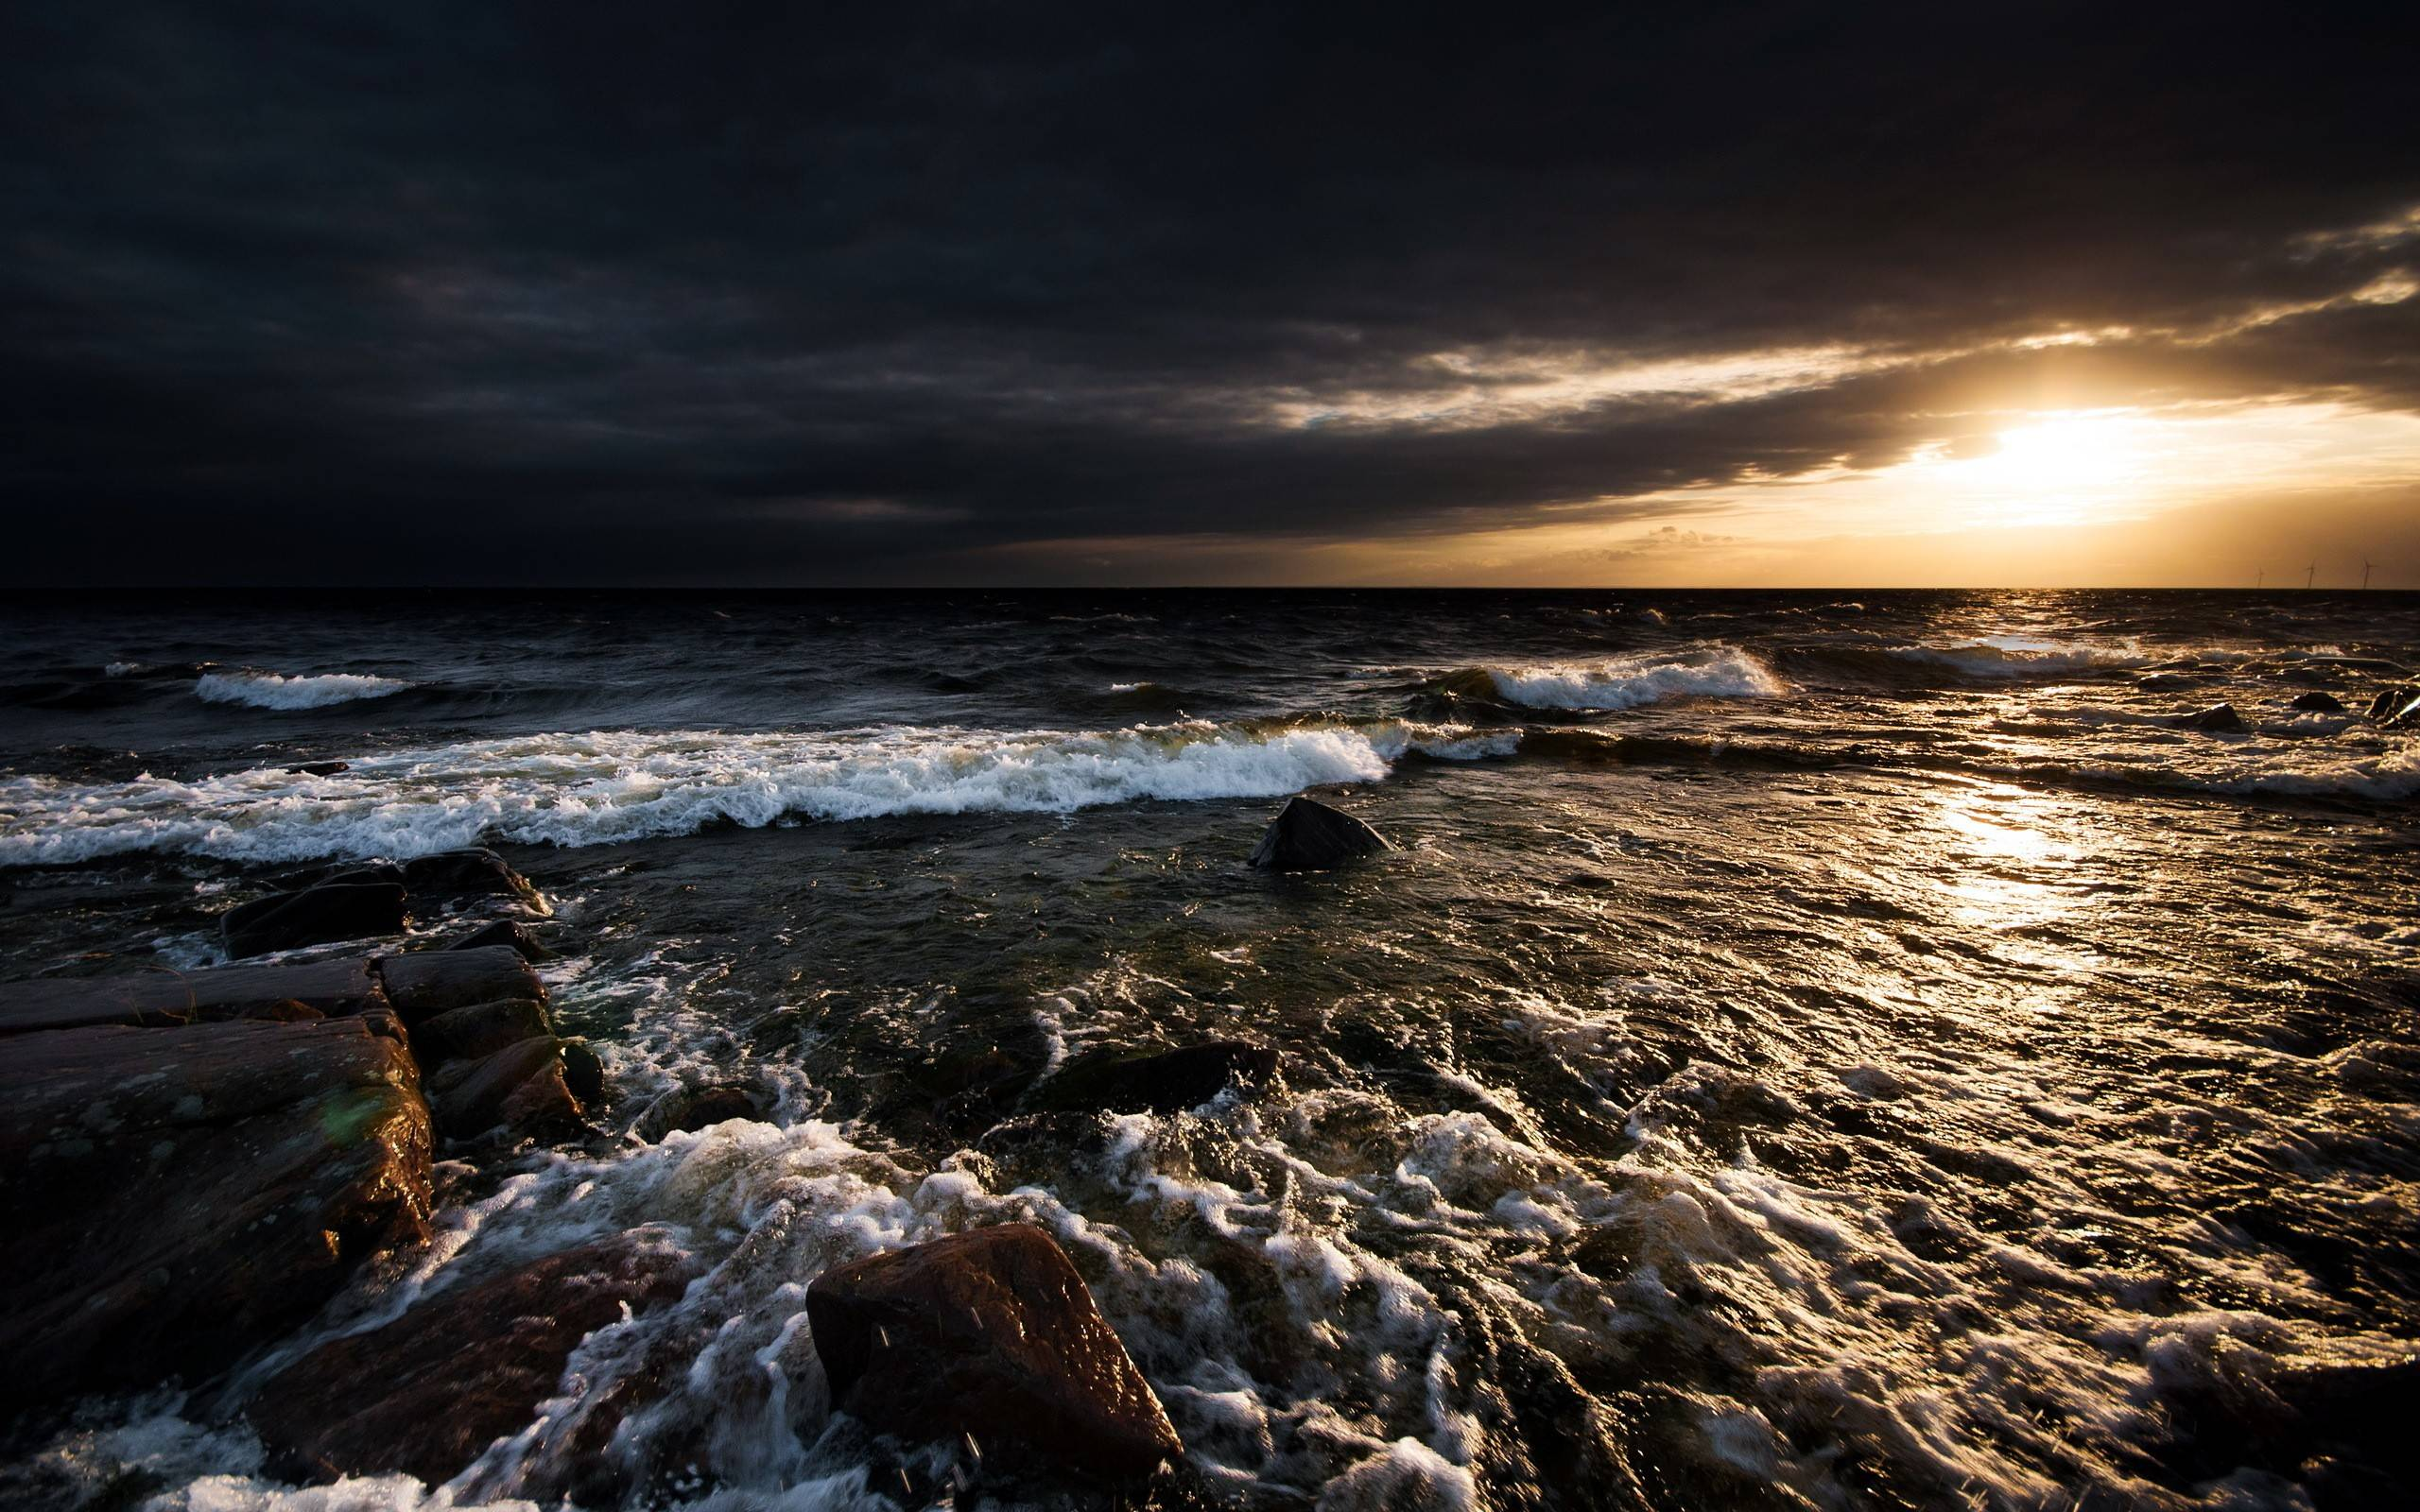 Daily Wallpaper: Stormy Waterscape